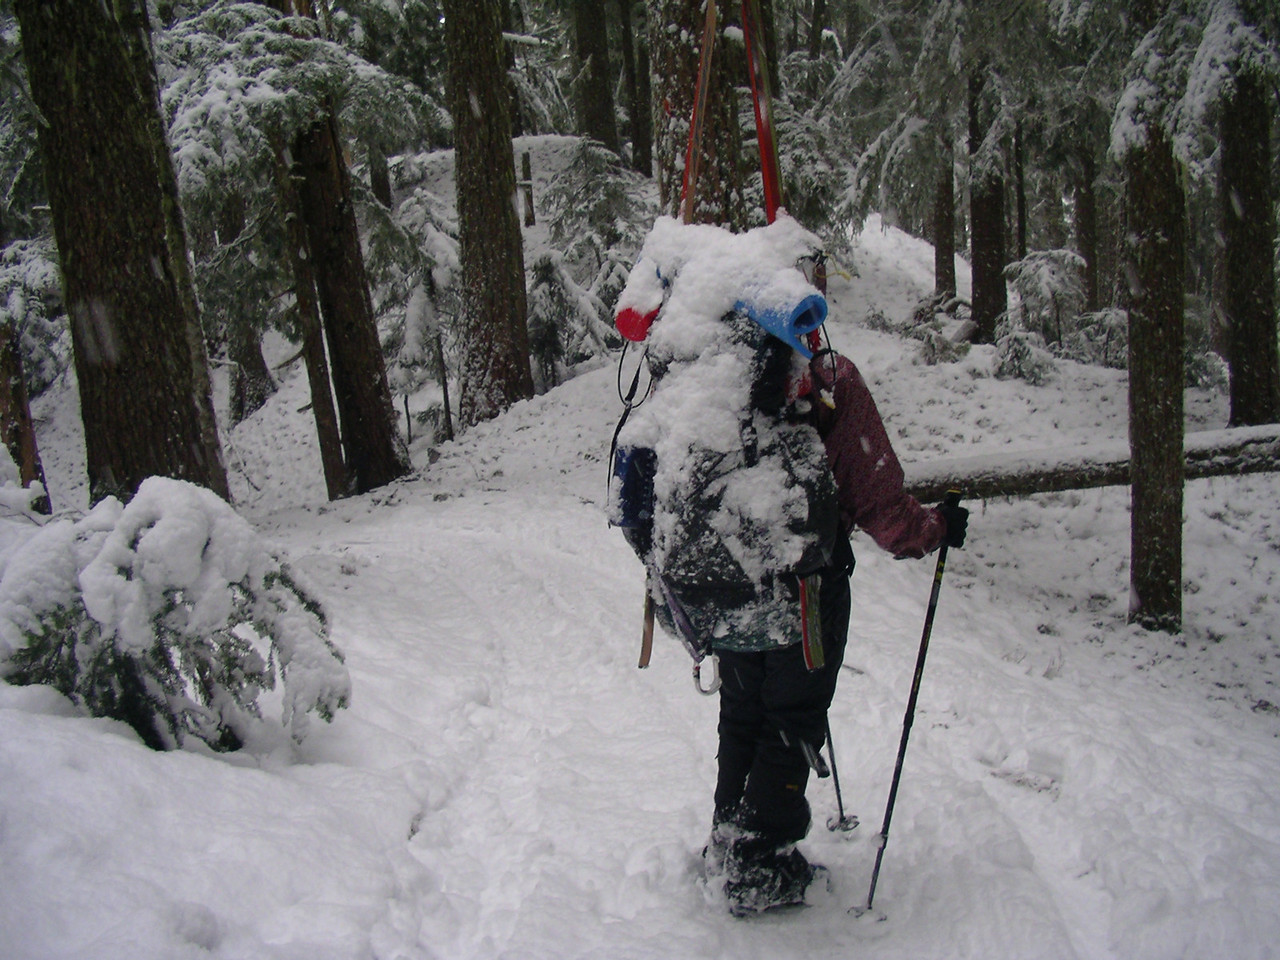 Our packs got heavy as the snow on the branches fell down on top of us. We skied through the trees on the trail for as long as I could. I gave up earlier than Scott Phil and Martina! Takes some skill to maneuever through the branches.